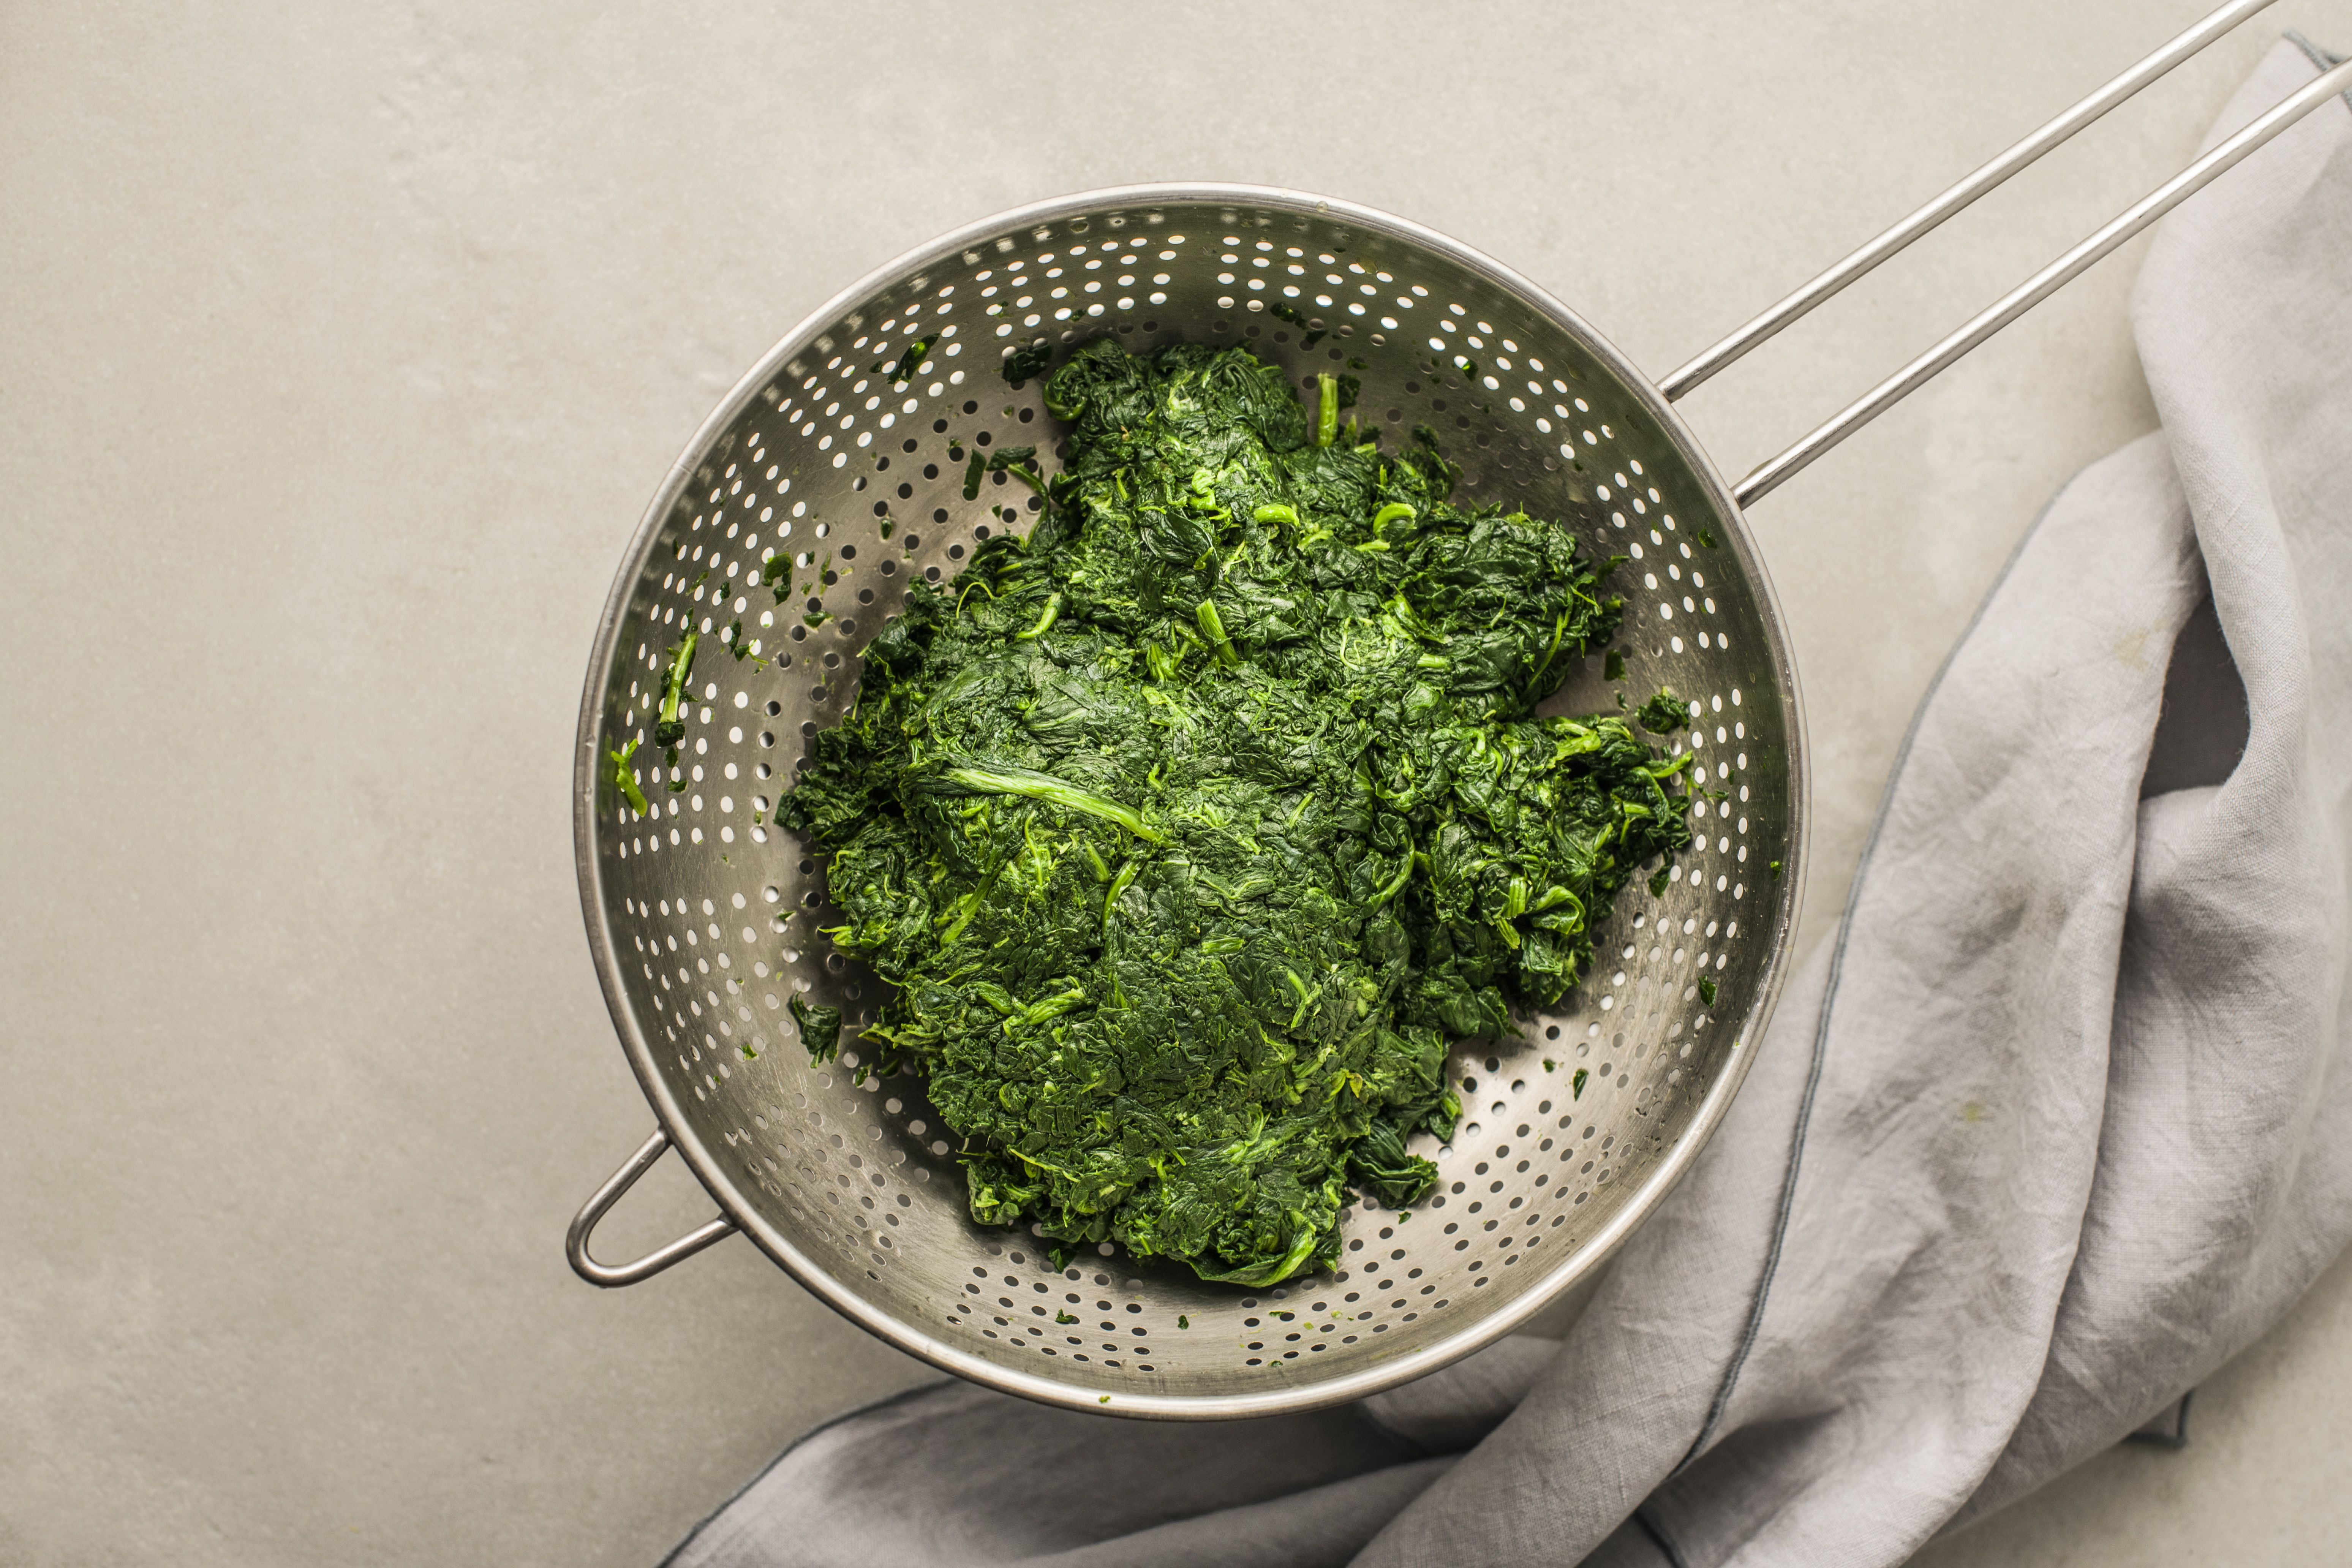 Thaw the spinach in a colander